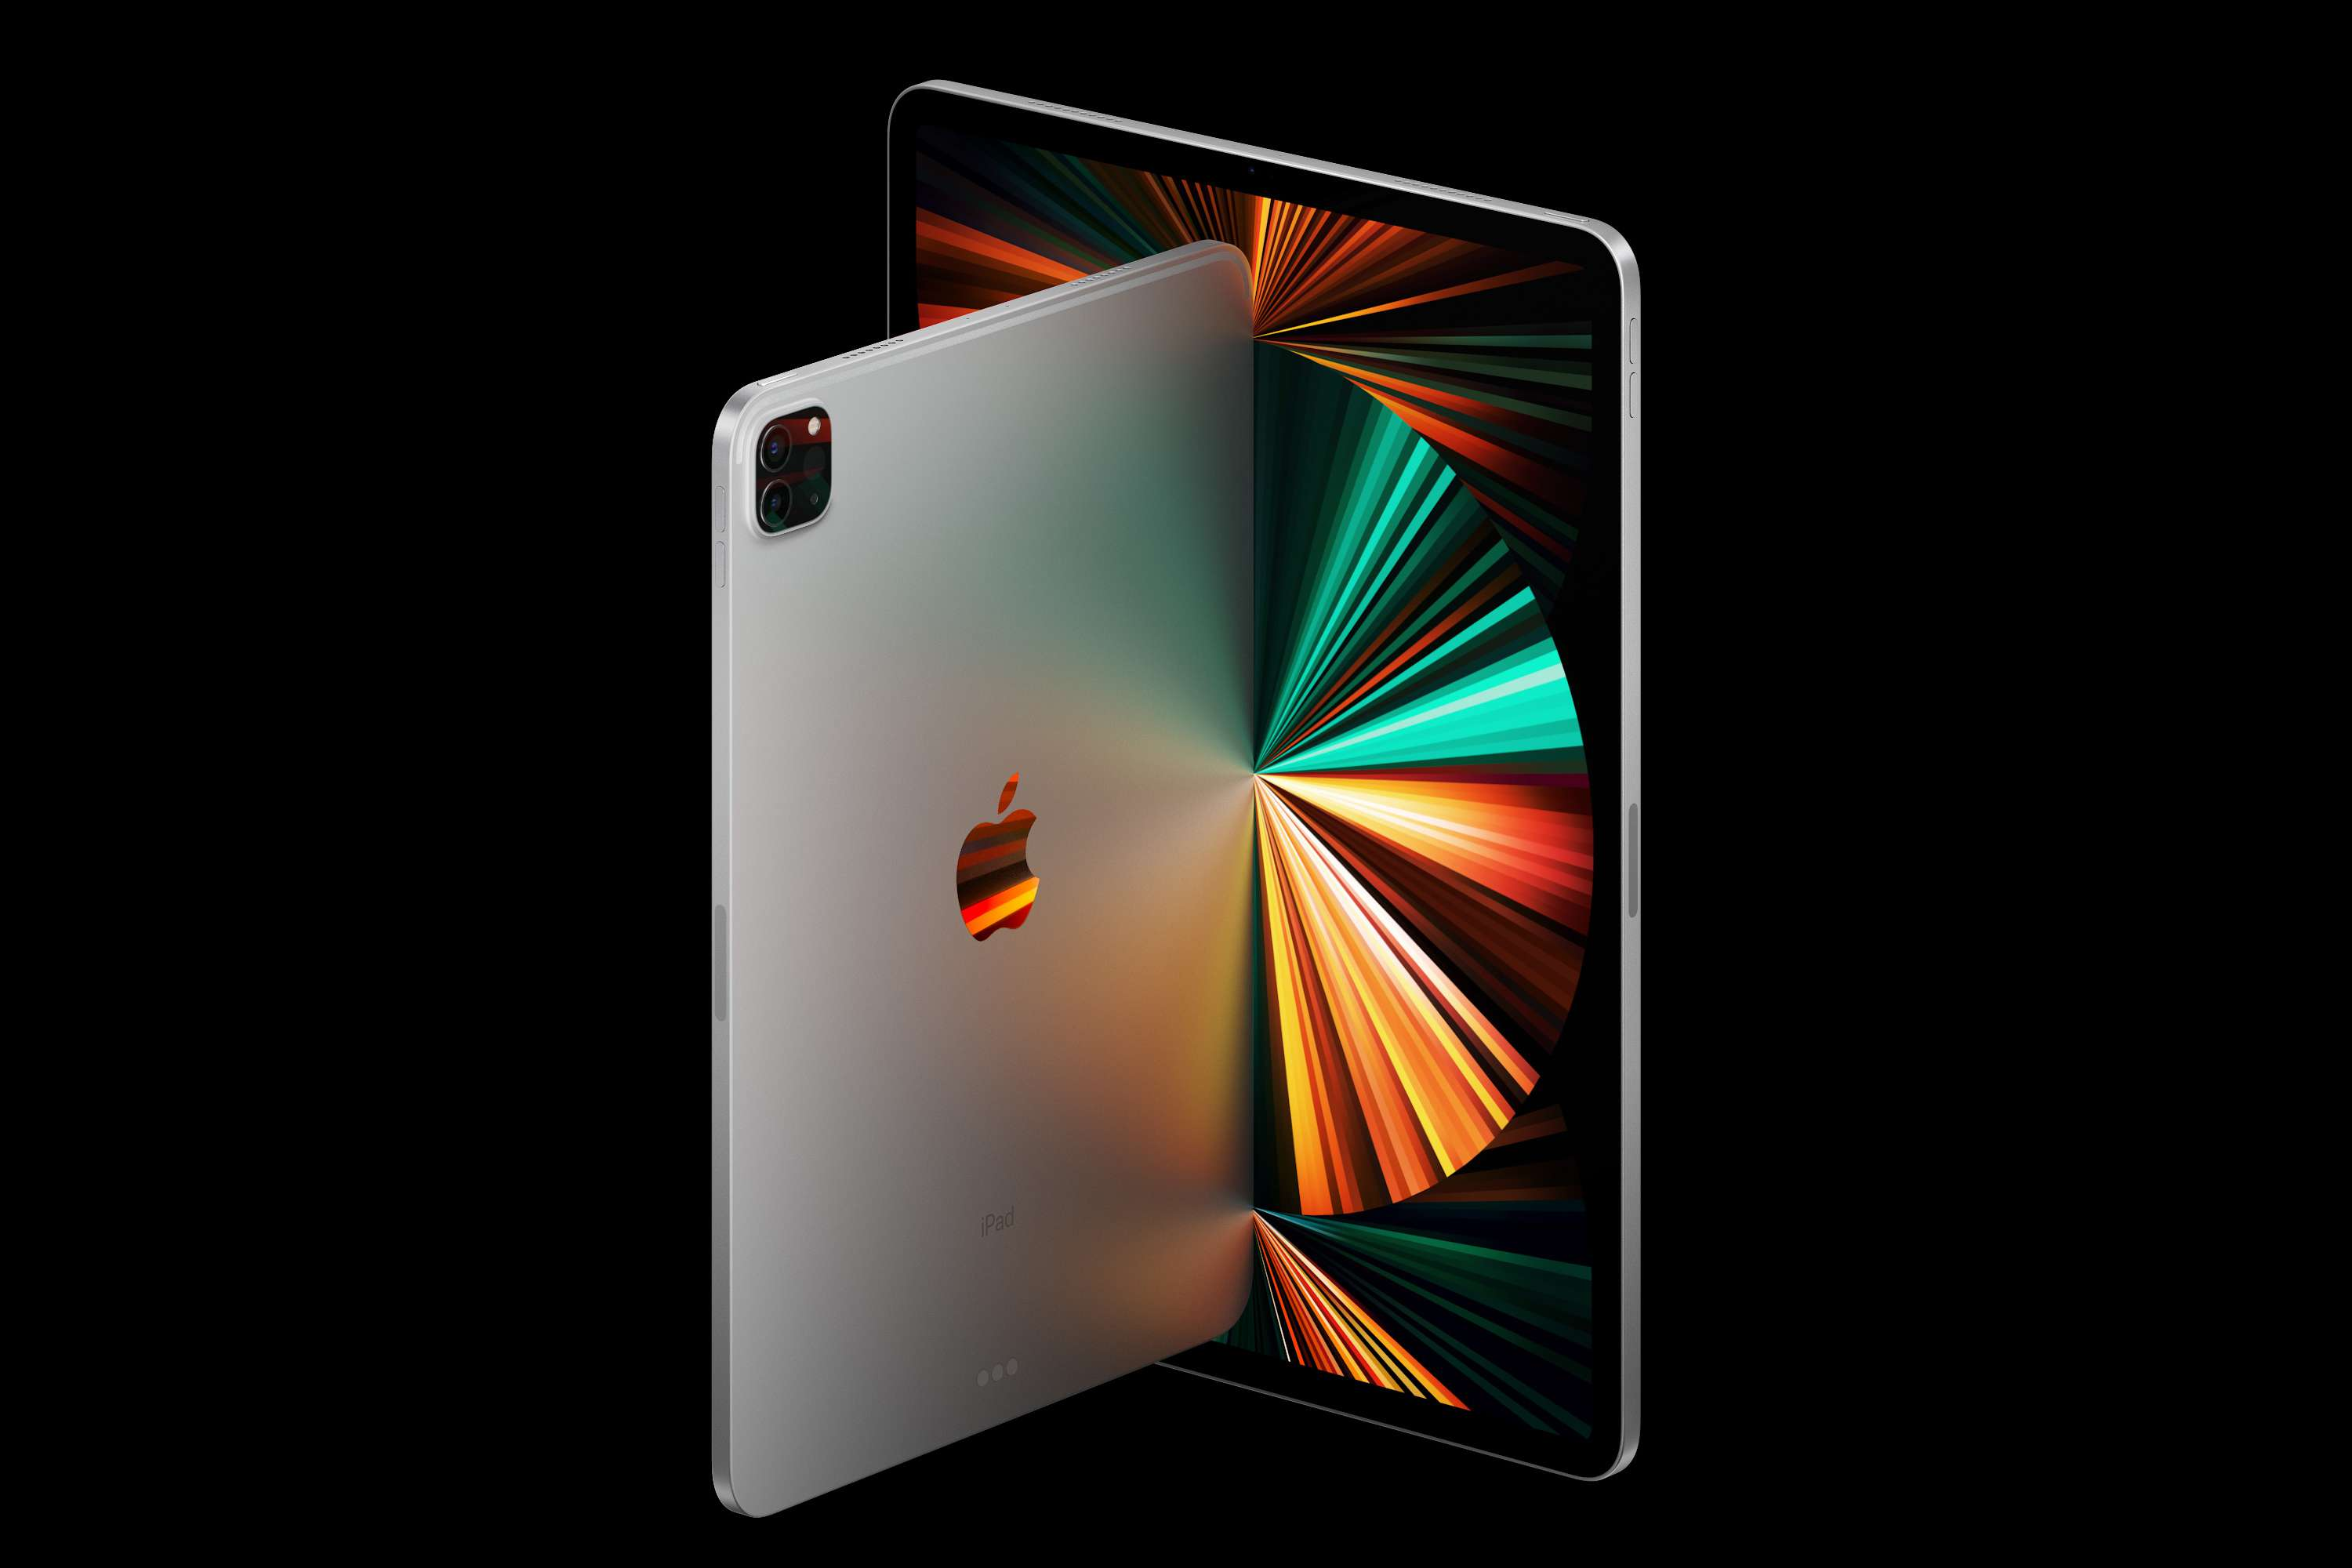 iPad Pro 2021 front and back view